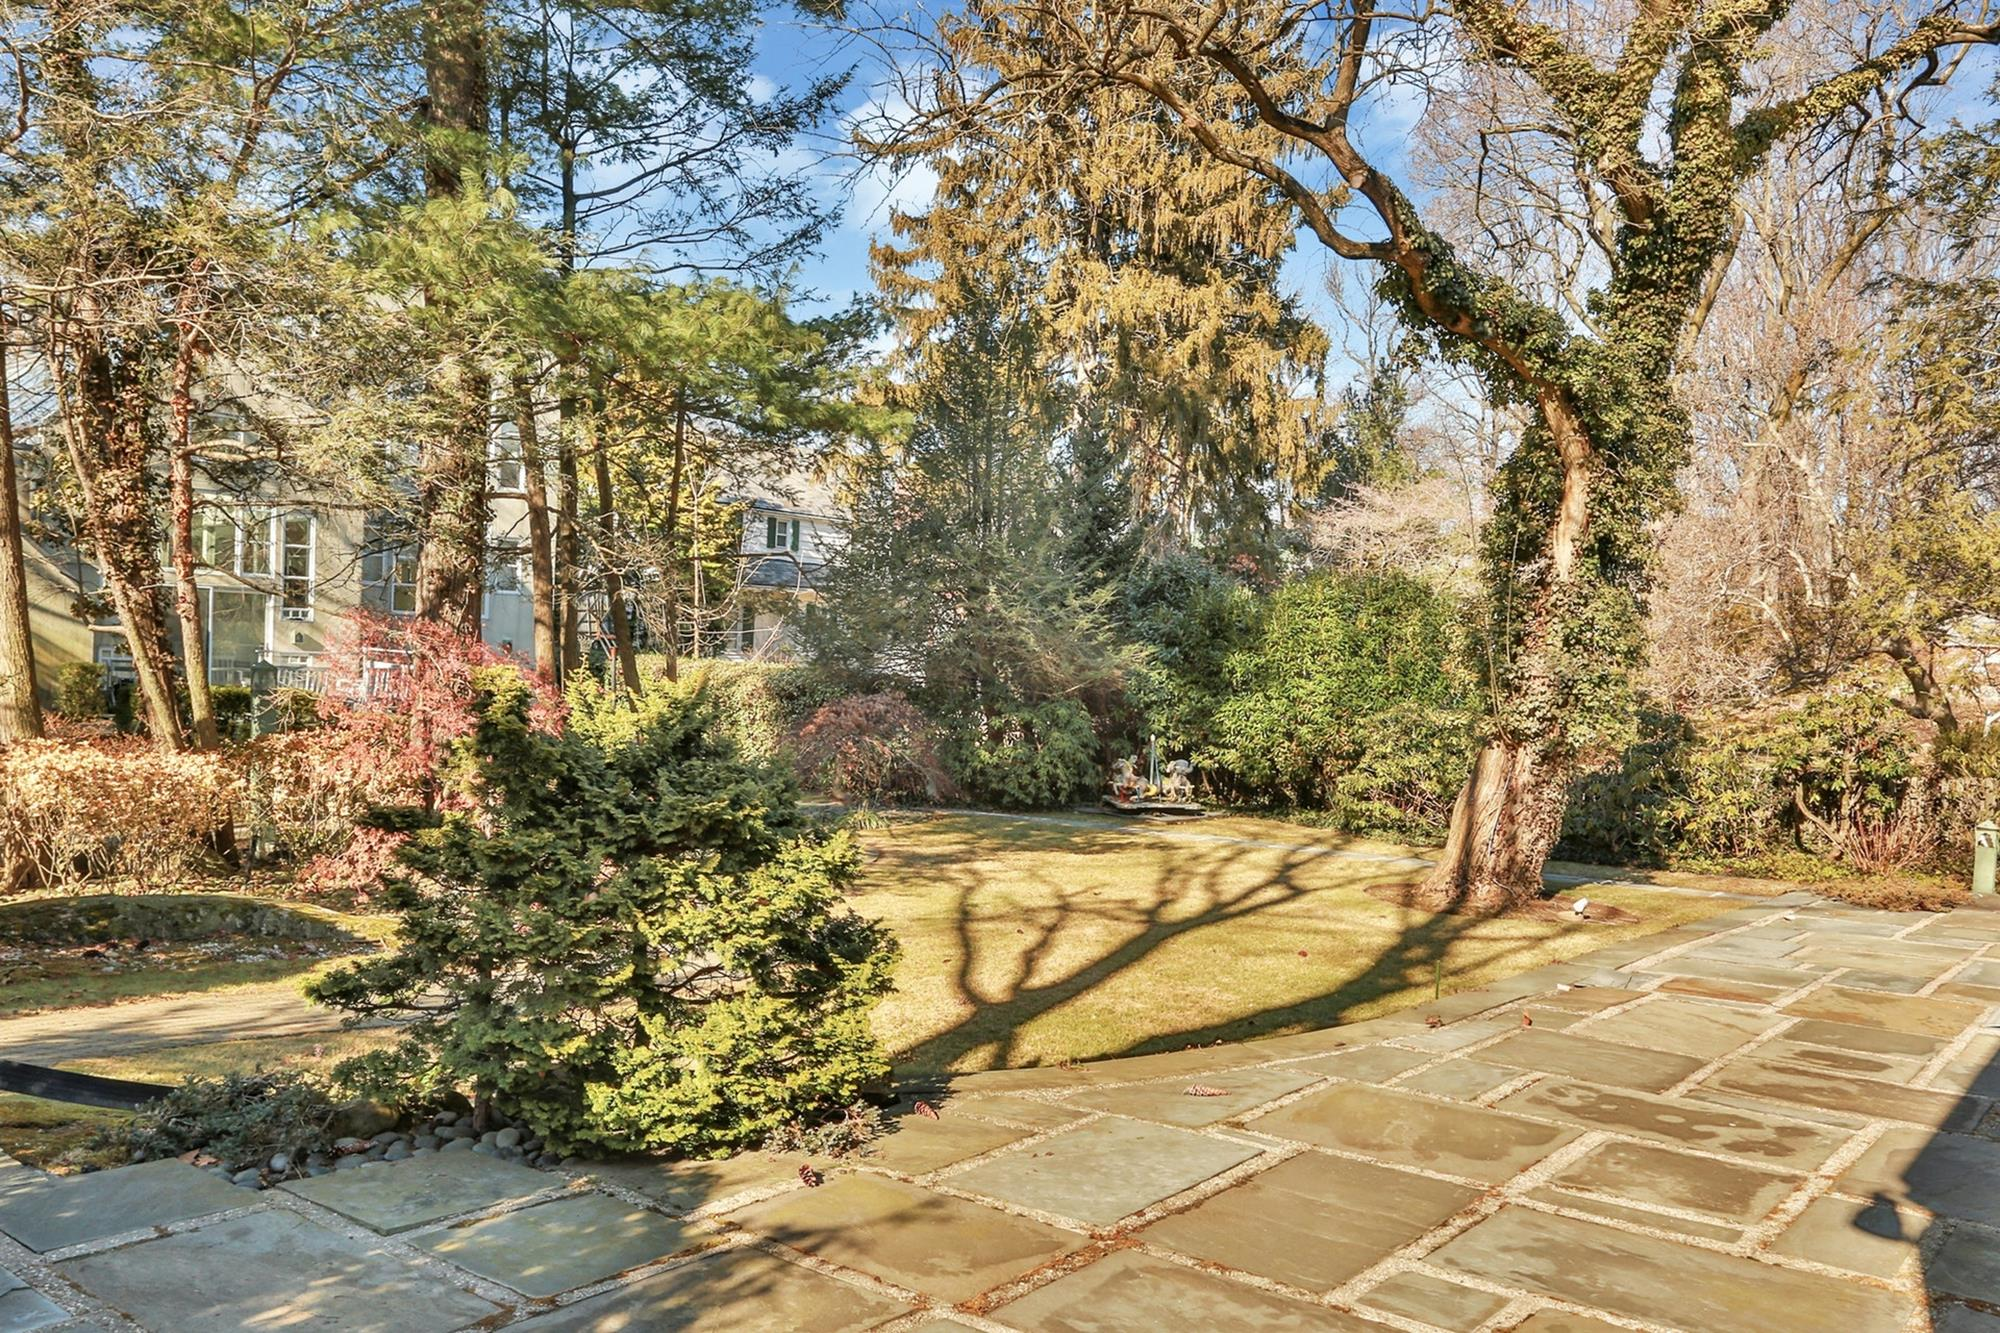 TWO FIELDSTON HOUSES ON ADJOINING LOTS: 5-Bd. House + 4-Bd. Guest House w/ Indoor Pool